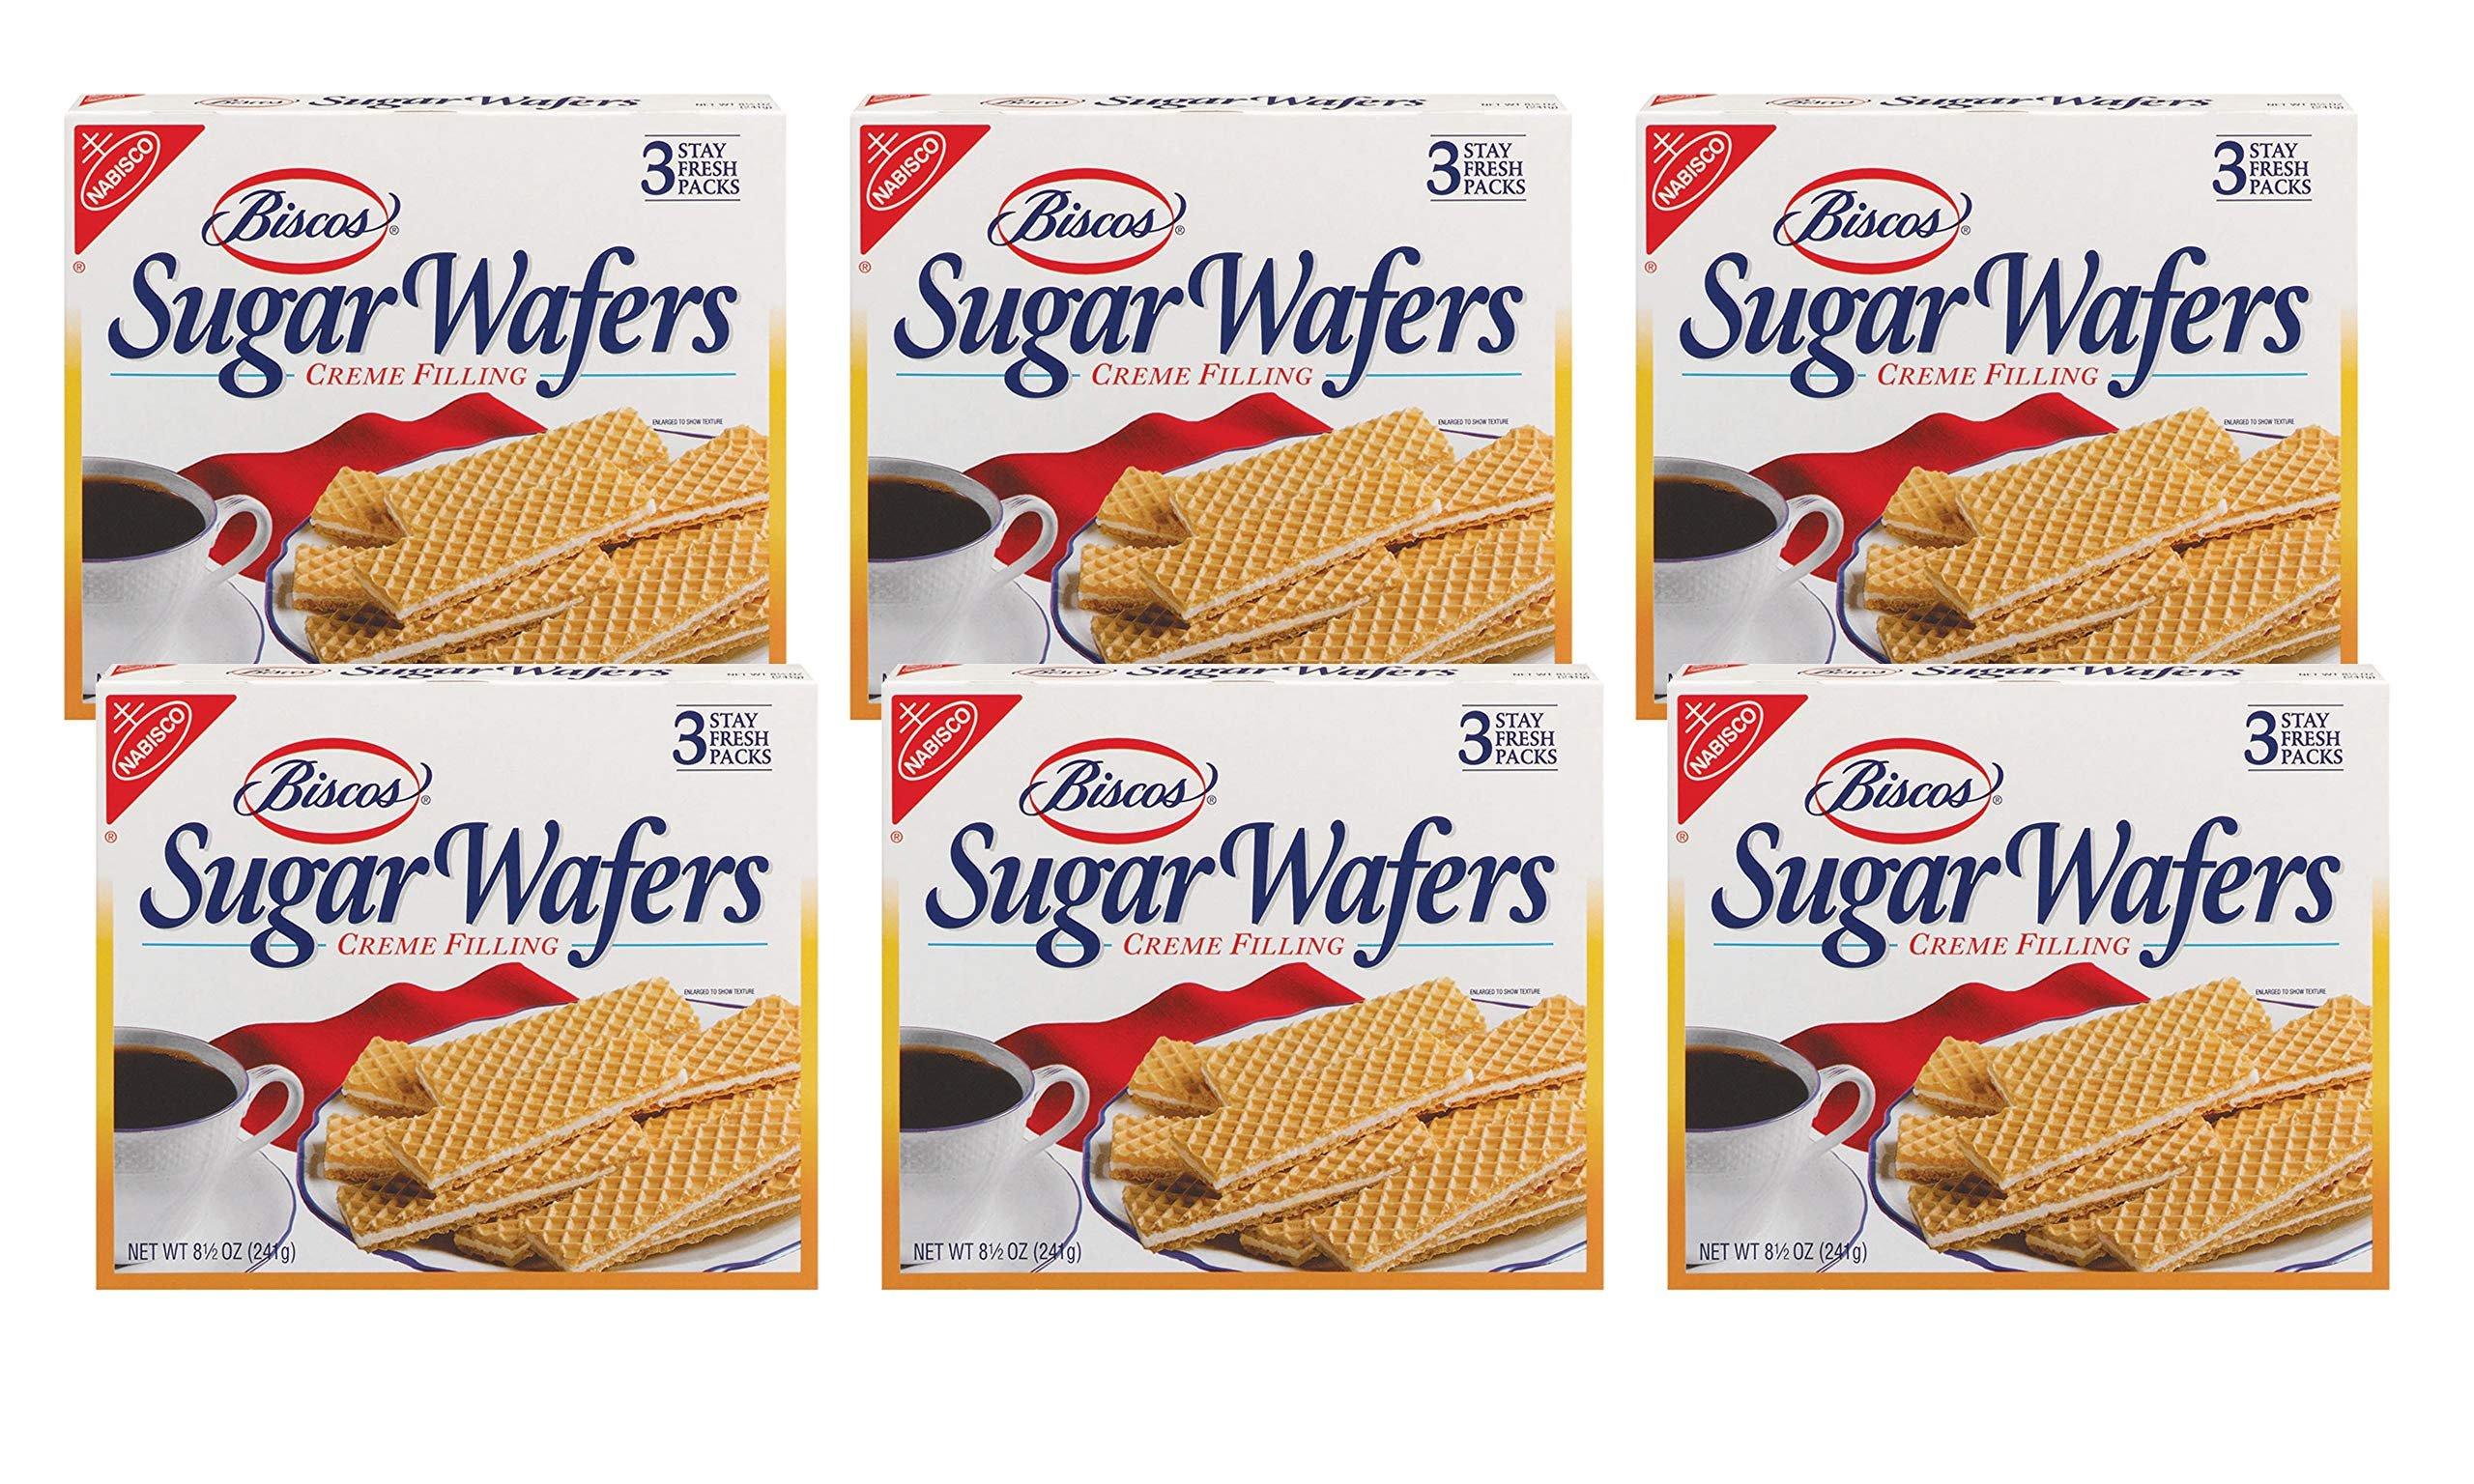 Biscos Sugar Wafers with Creme Filling, 8.5 Ounce (Pack of 6) by Biscos